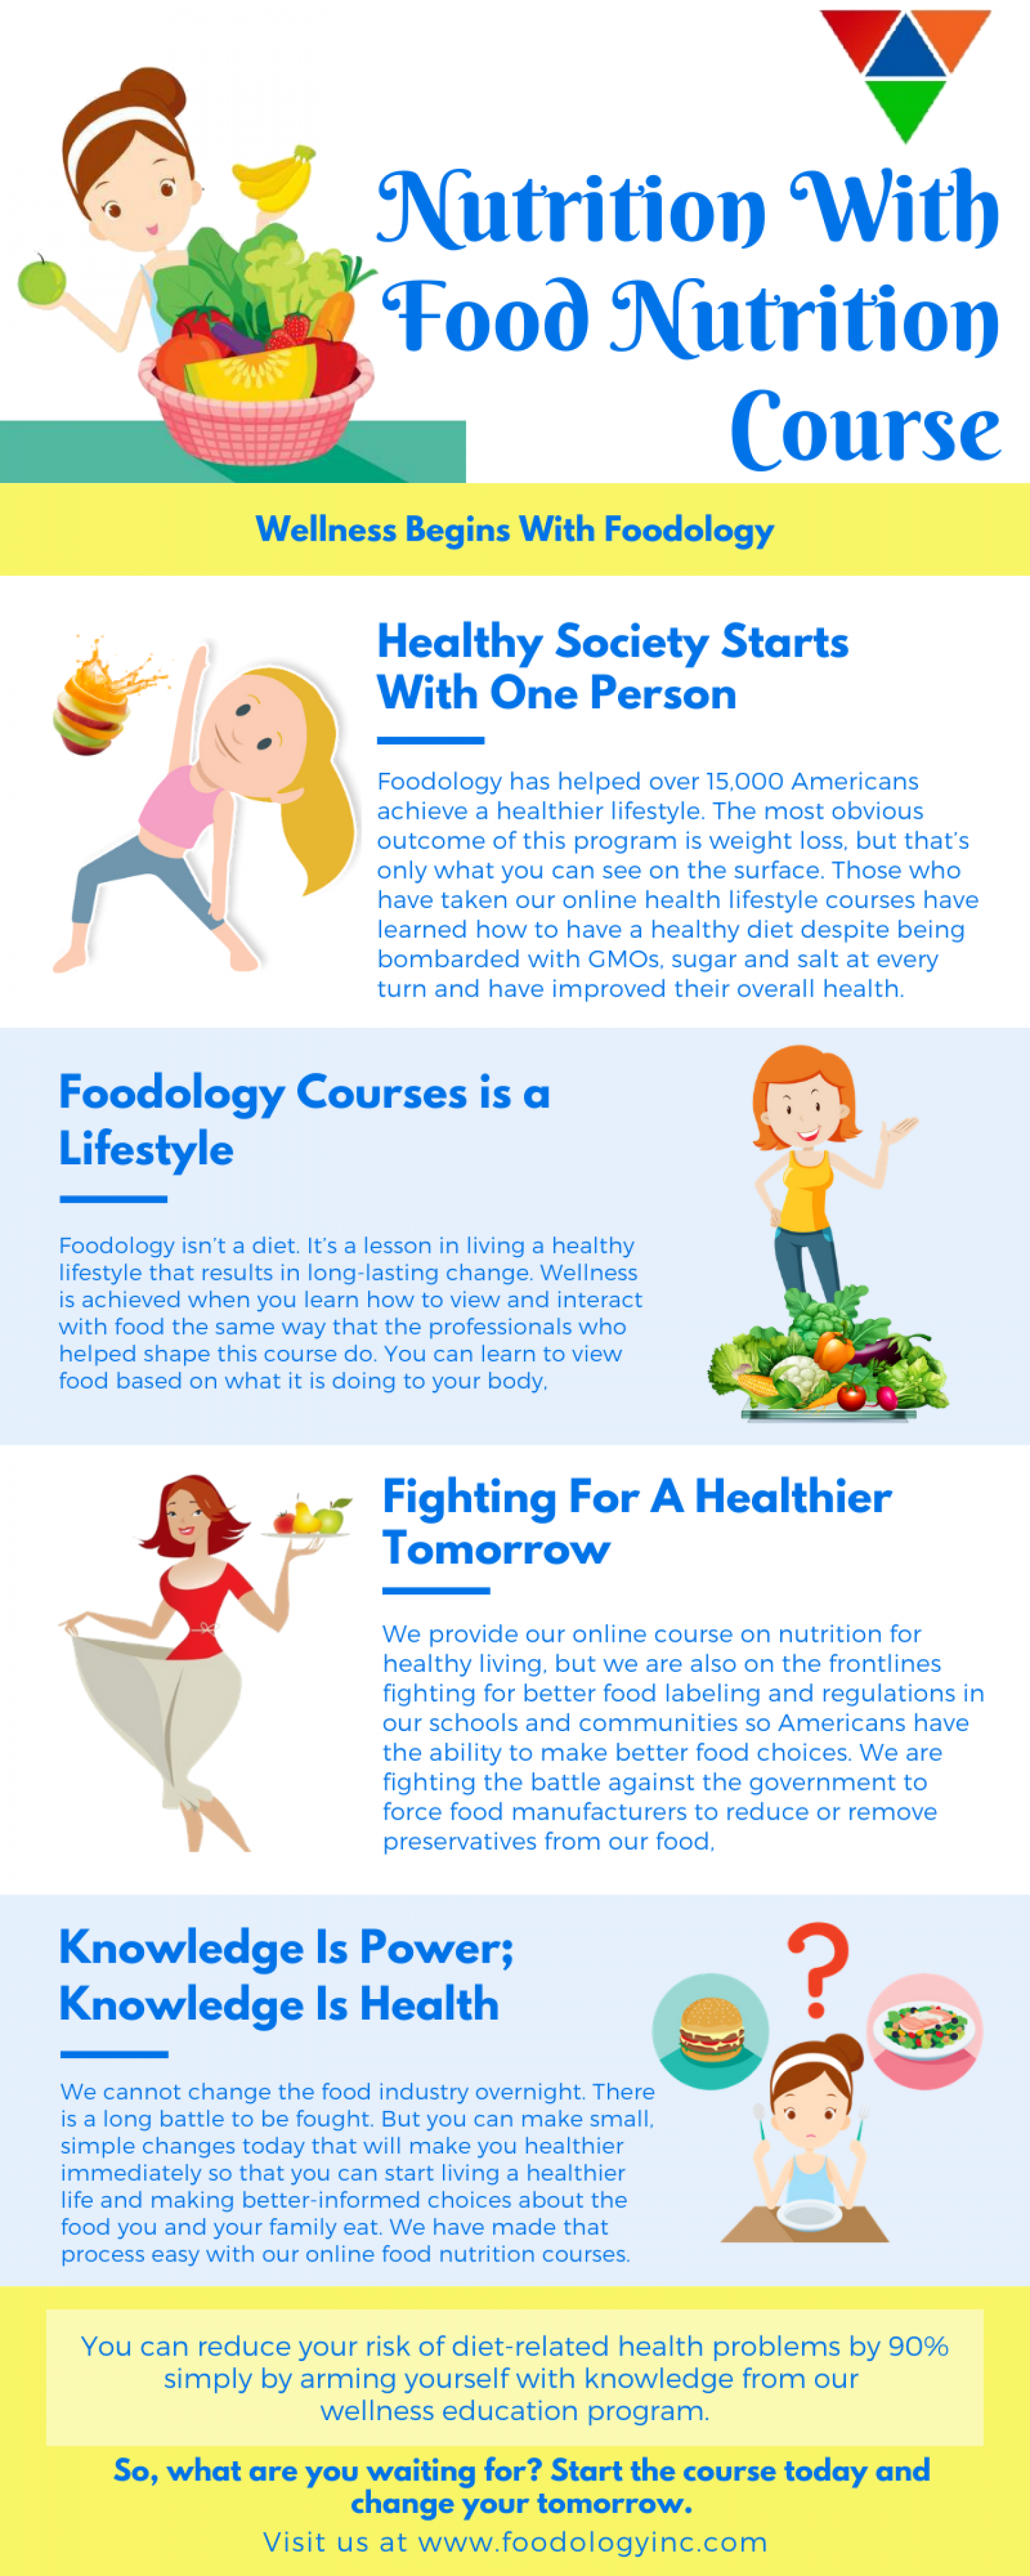 Course on Diet and Nutrition | Knowledge Is Power; Knowledge Is Health Infographic